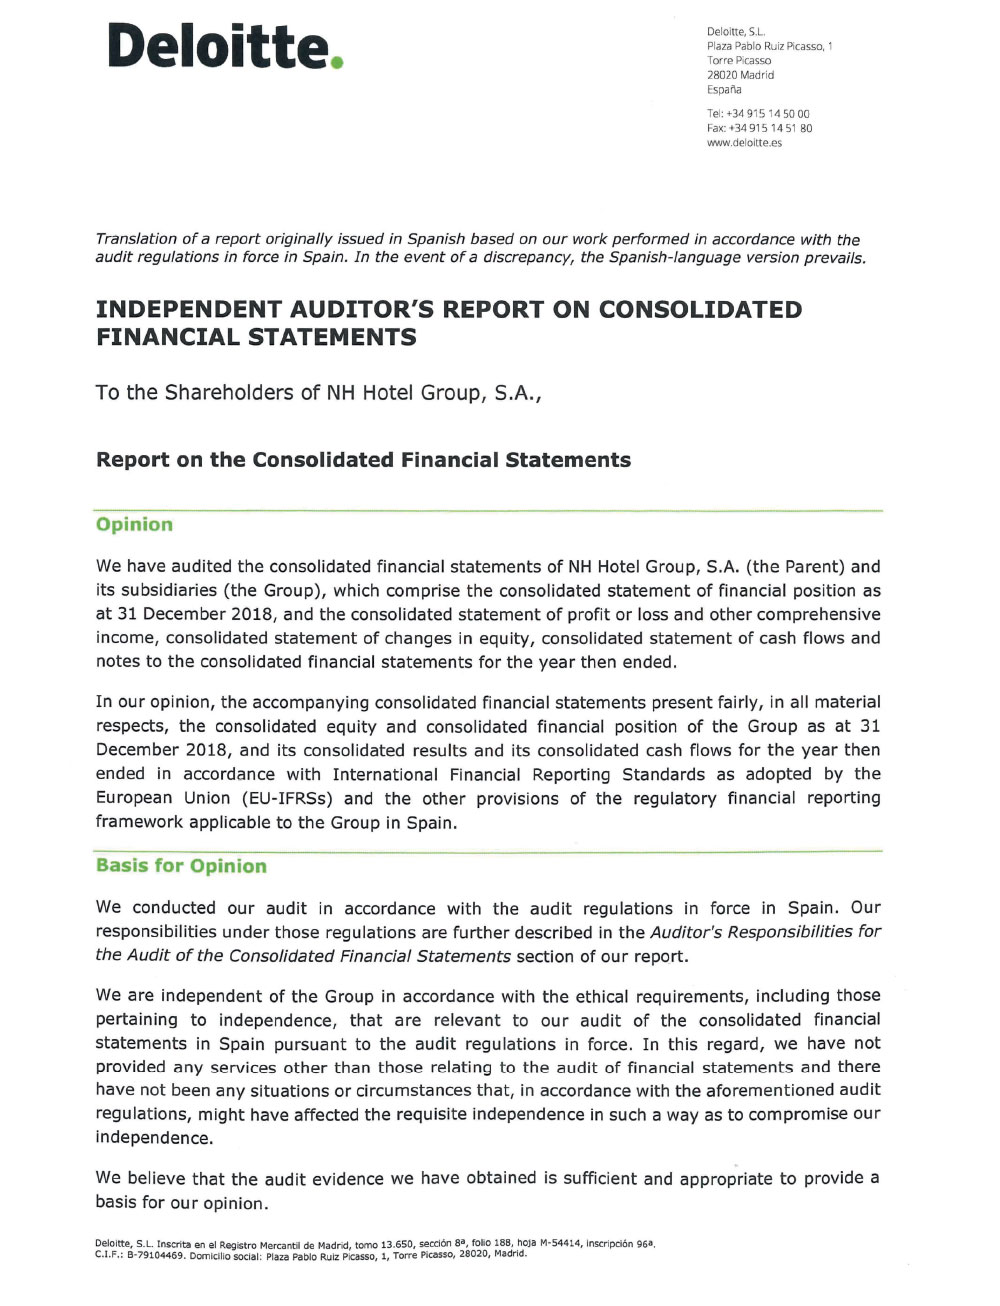 INDEPENDENT AUDITORS REPORT ON CONSOLIDATED FINANCIAL